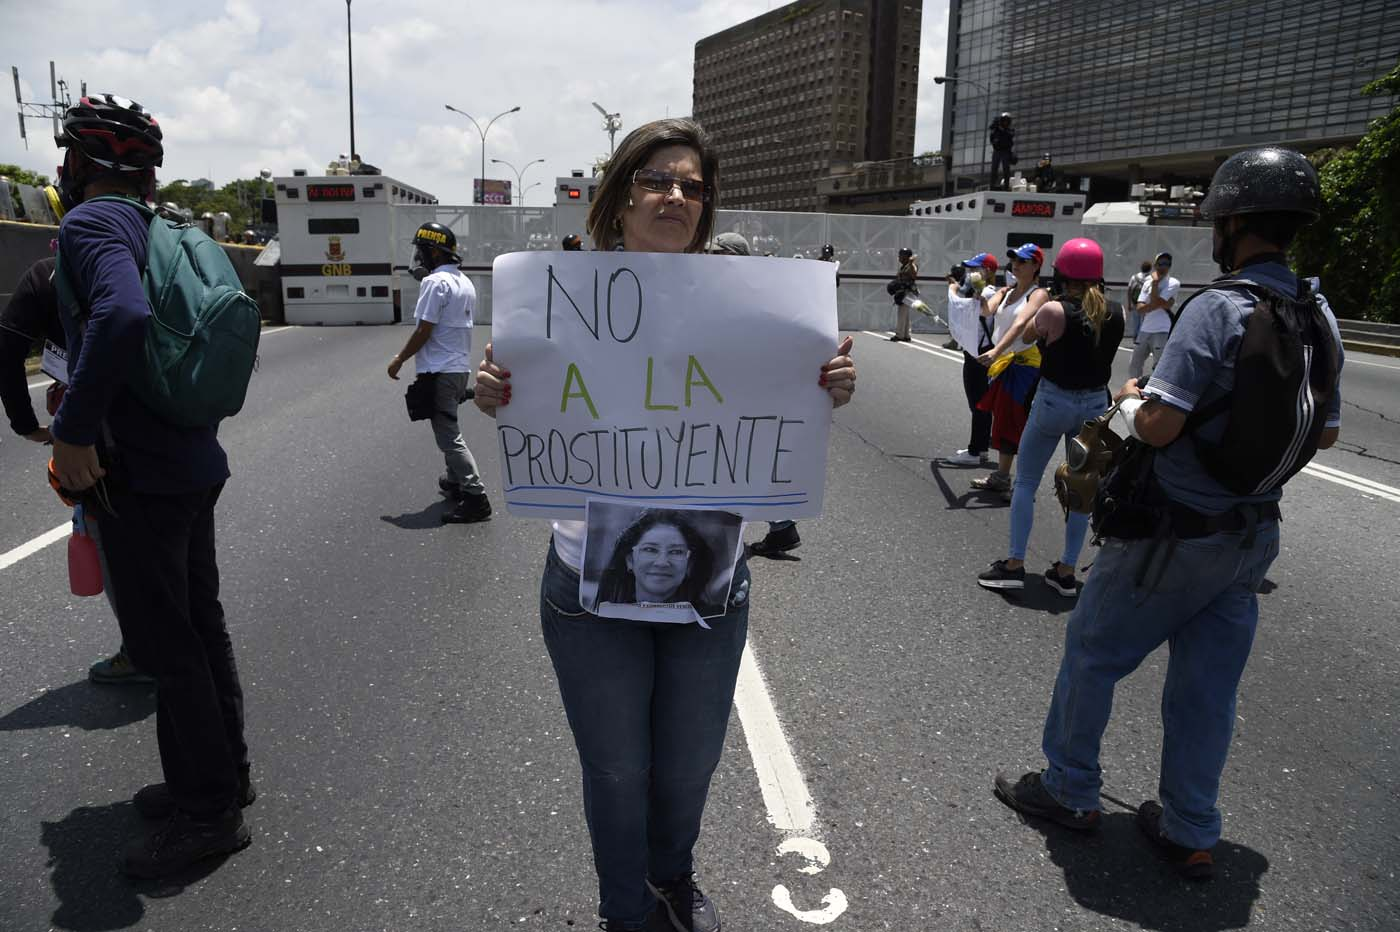 A Venezuelan opposition activist holds a sign against Venezuelan First Lady Cilia Flores during a women's march aimed to keep pressure on President Nicolas Maduro, whose authority is being increasingly challenged by protests and deadly unrest, in Caracas on May 6, 2017. The death toll since April, when the protests intensified after Maduro's administration and the courts stepped up efforts to undermine the opposition, is at least 36 according to prosecutors. / AFP PHOTO / JUAN BARRETO